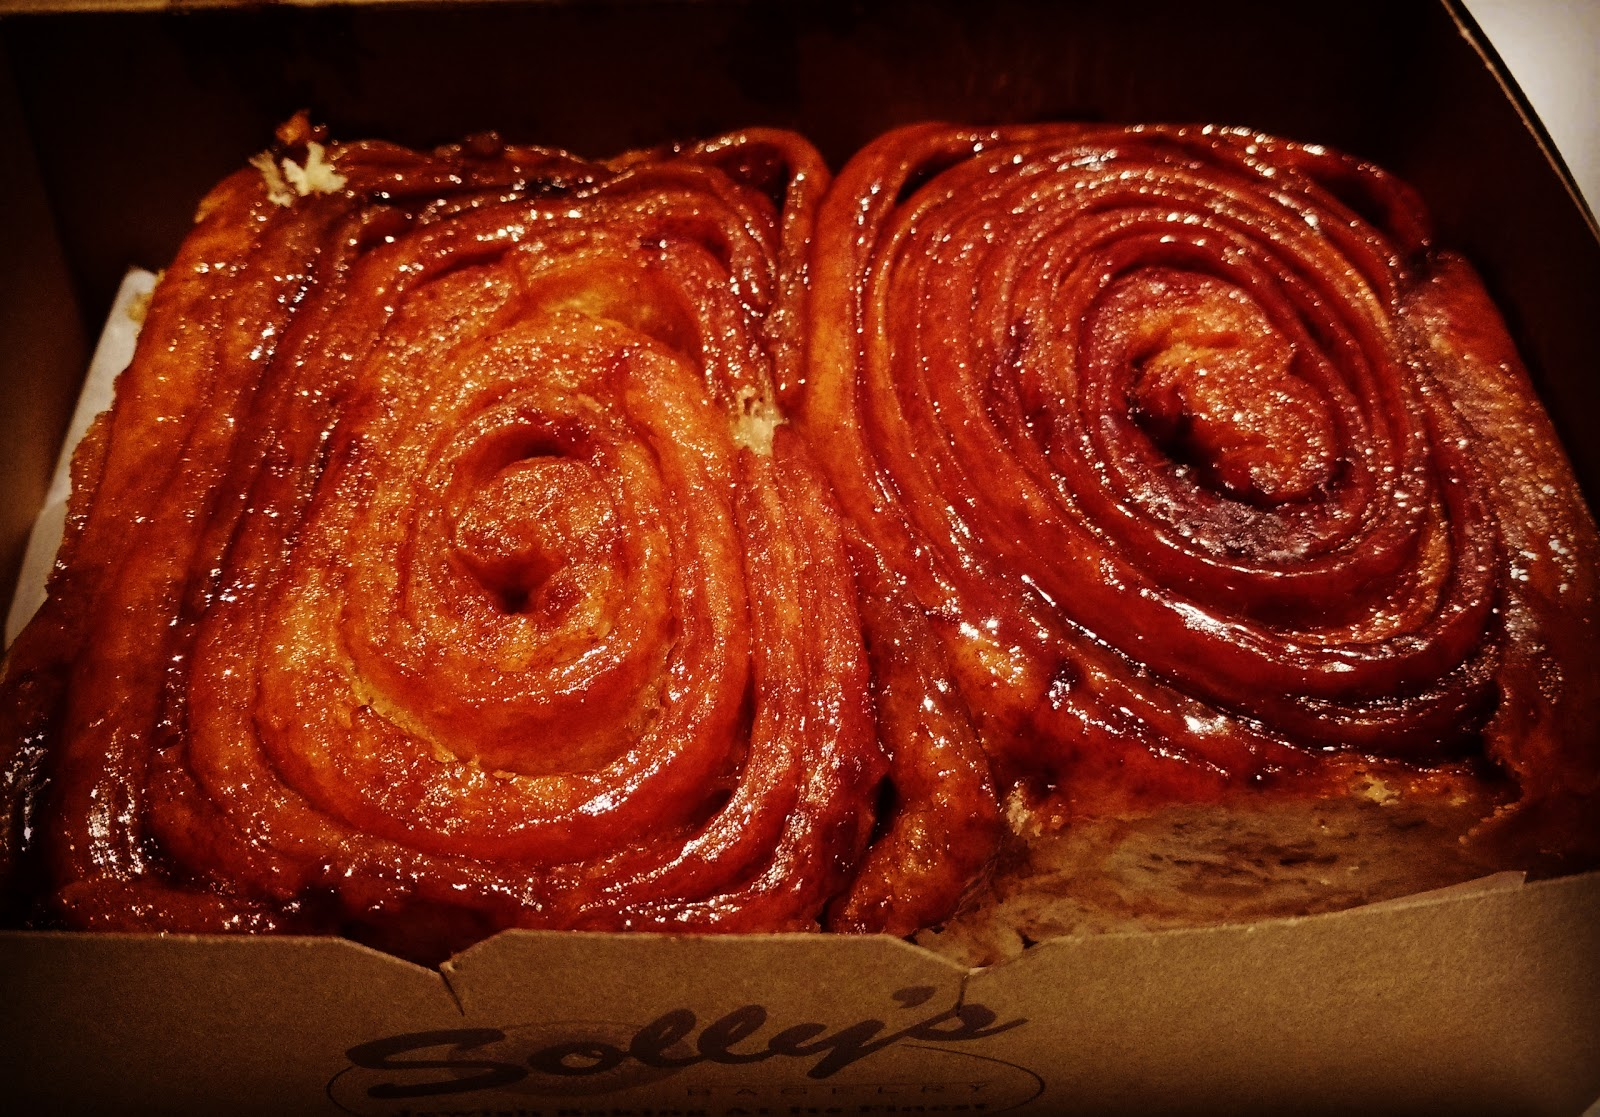 Vancouver, where these cinnamon buns make me nostalgic for childhood holidays in this city.